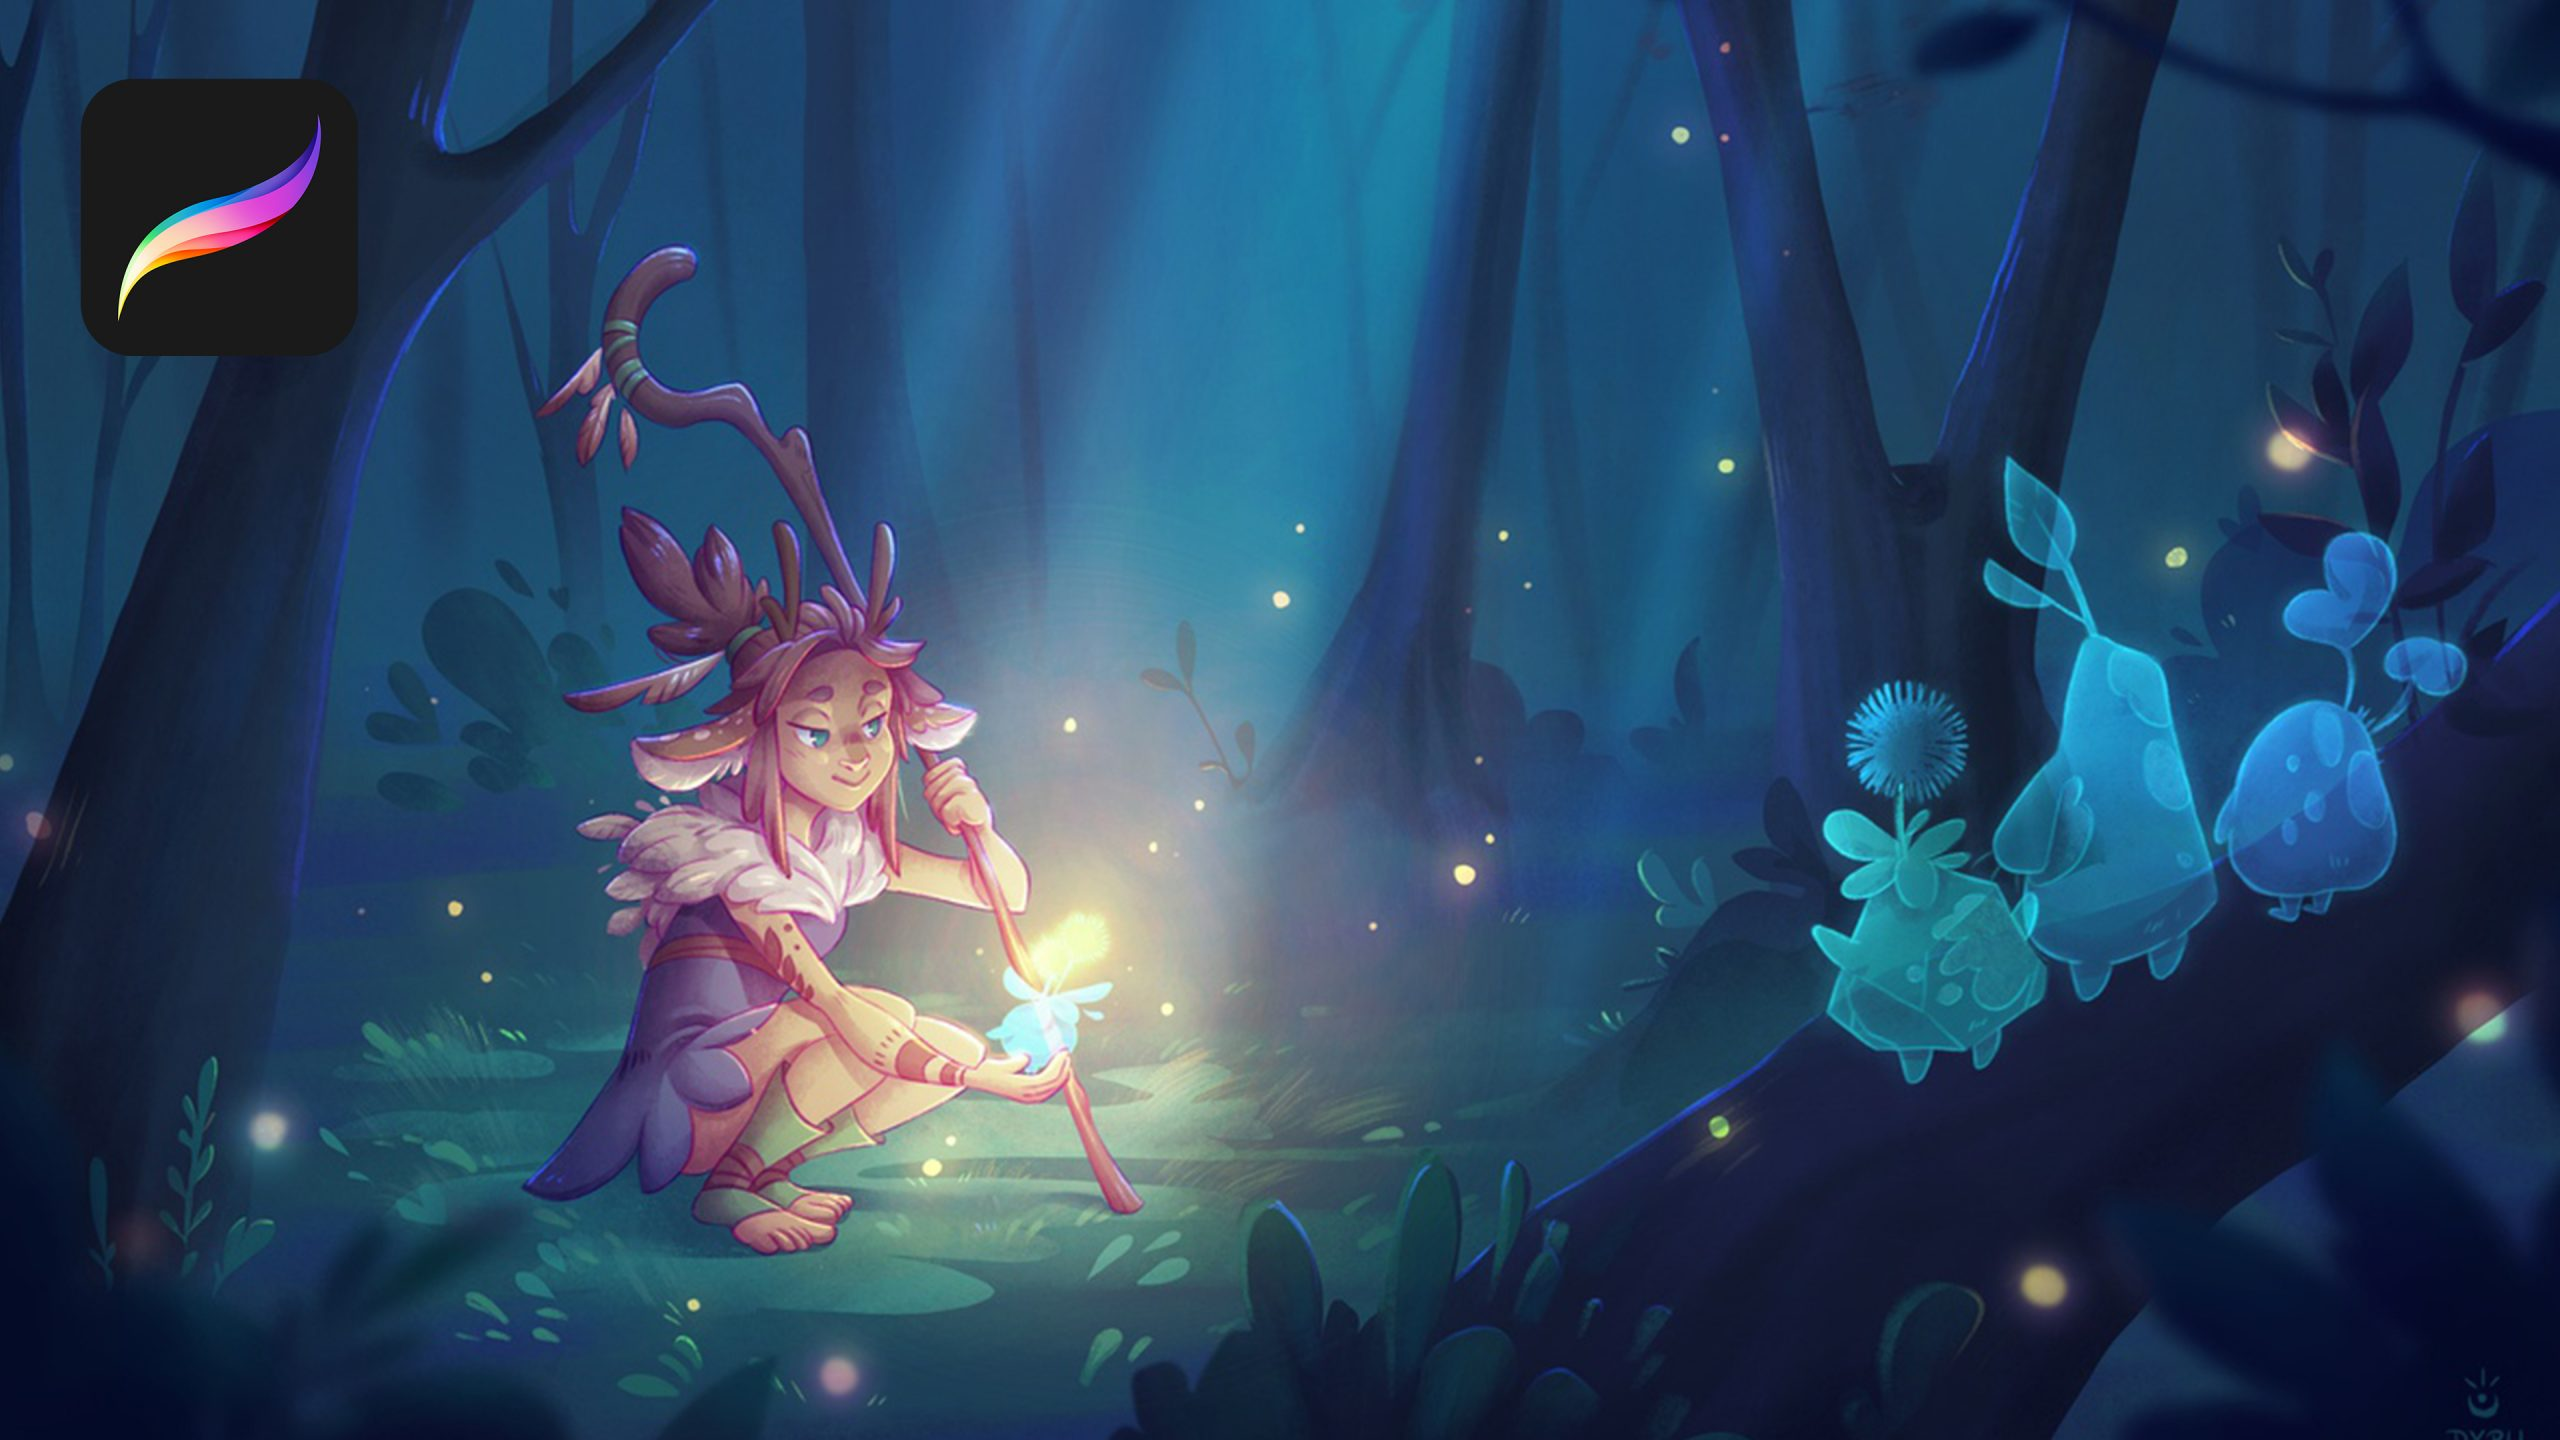 A stylized faun looks at a glowing forest creature